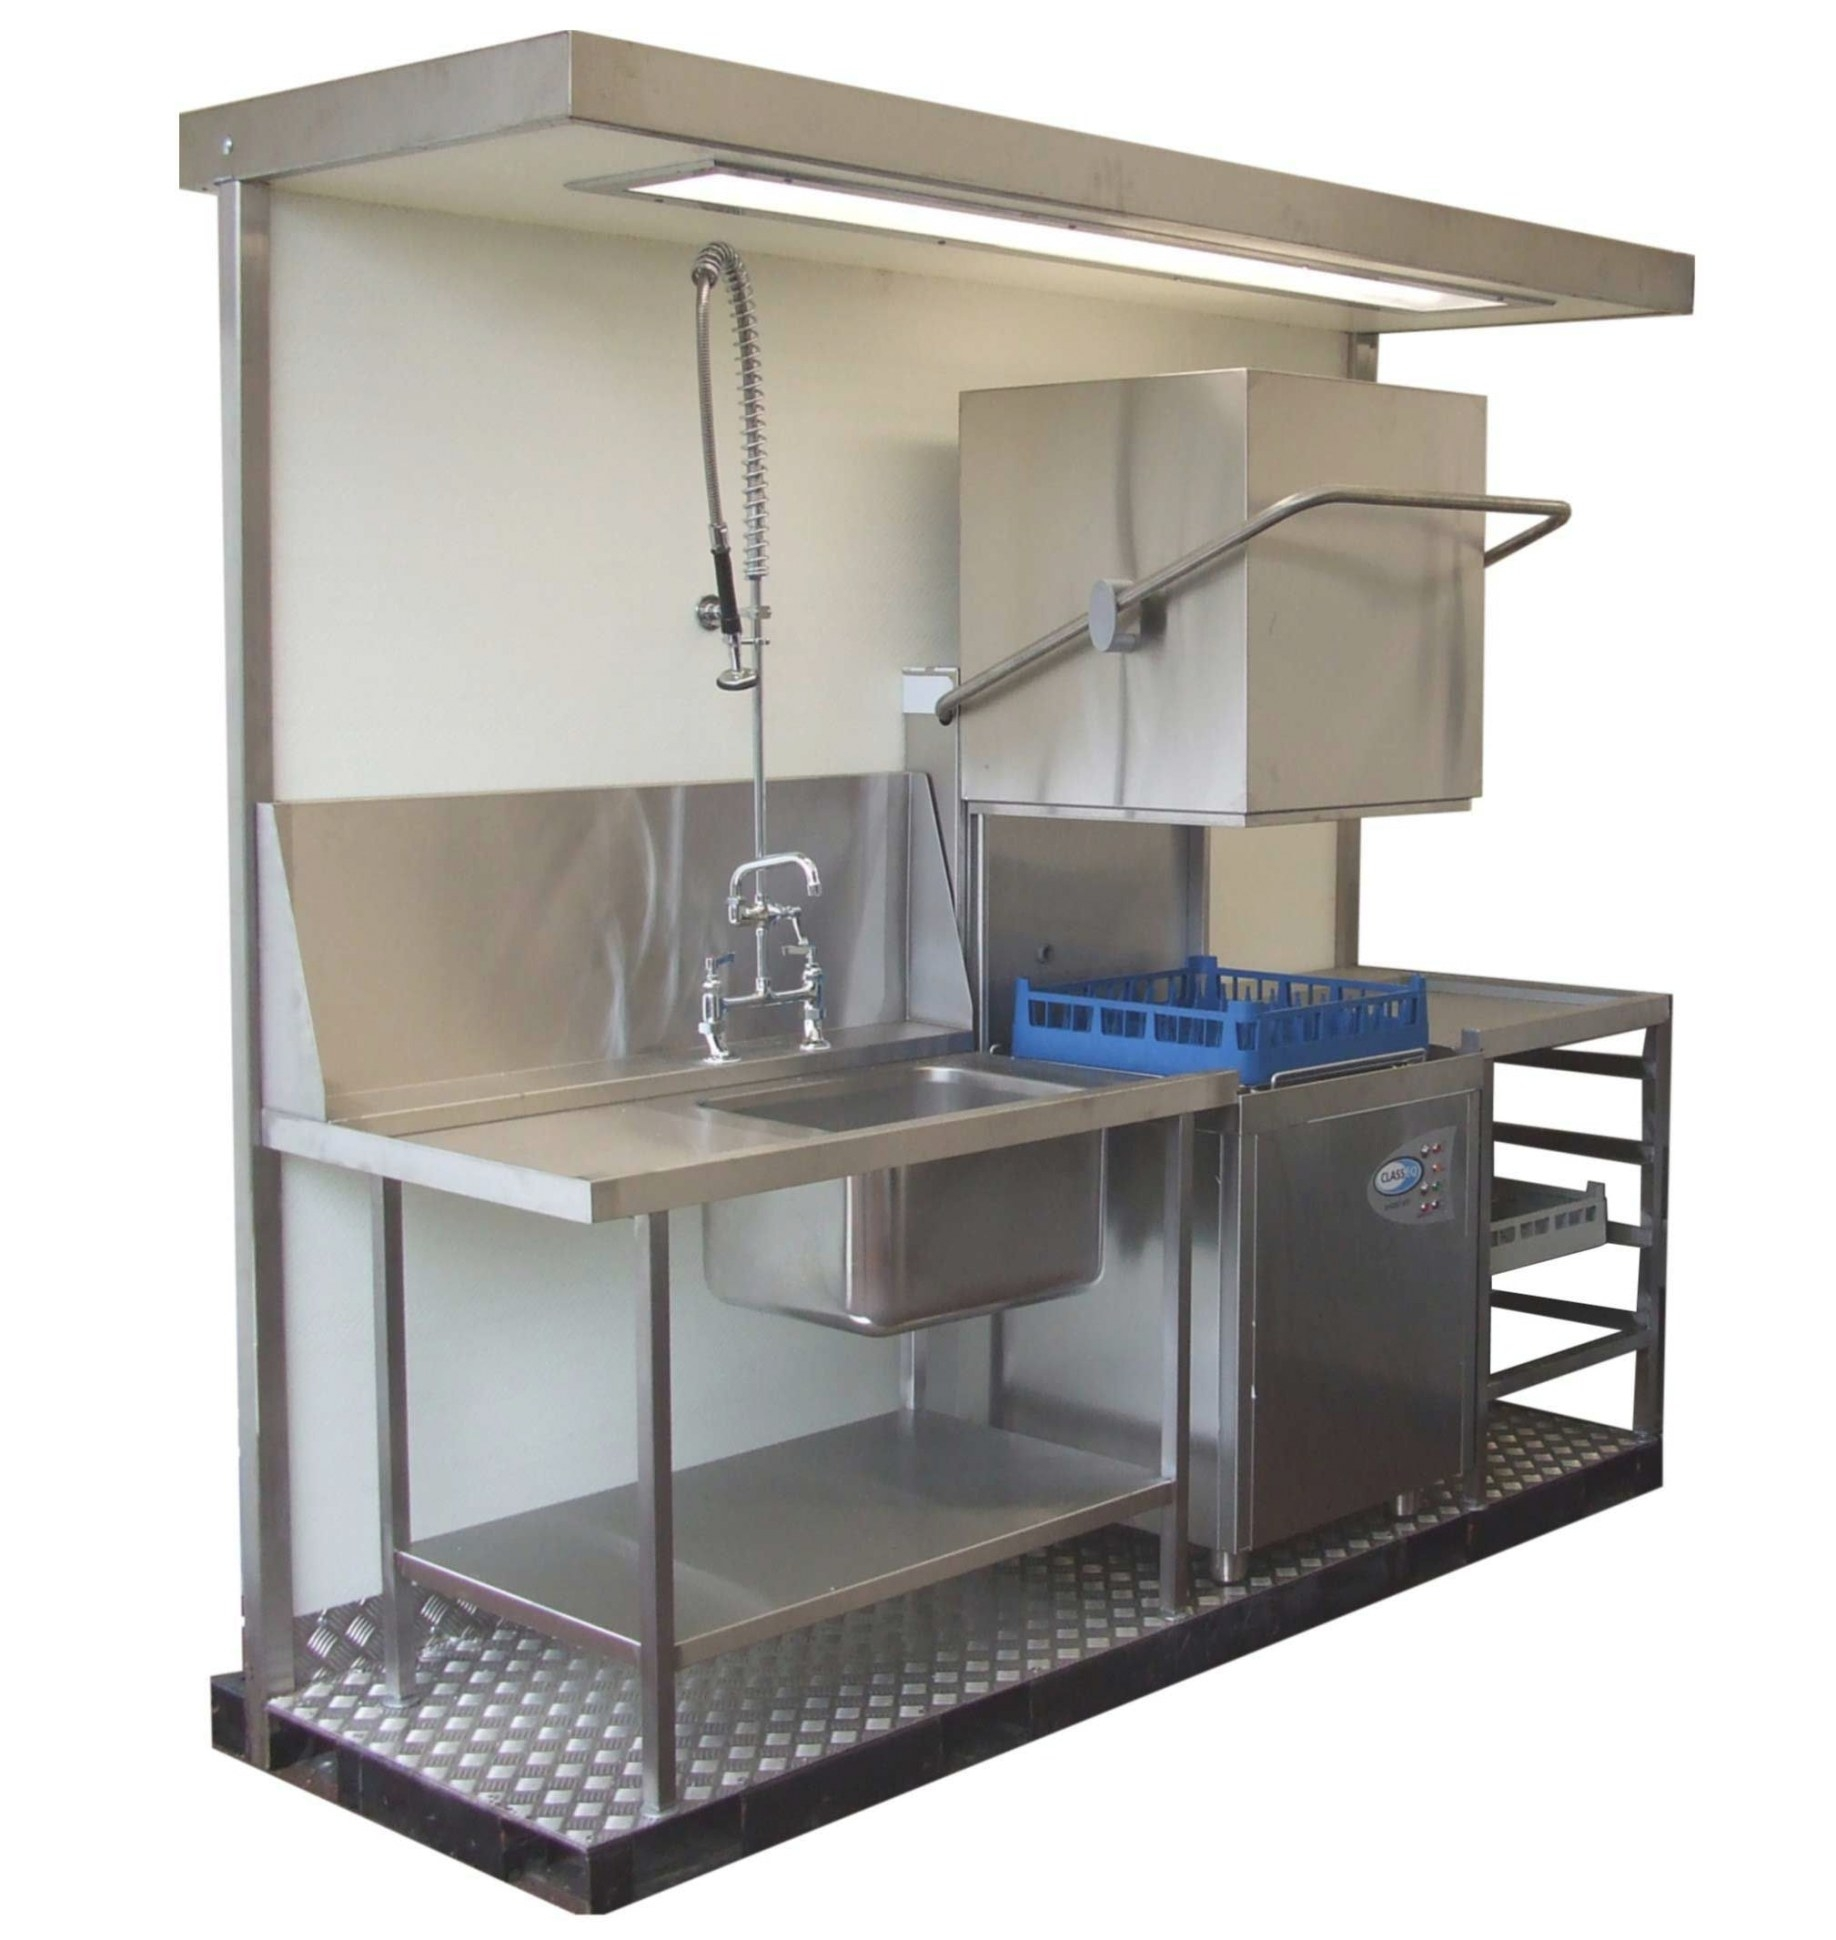 Commercial Dishwashing Layout - Google Search | Modern with Industrial Dishwasher For Home